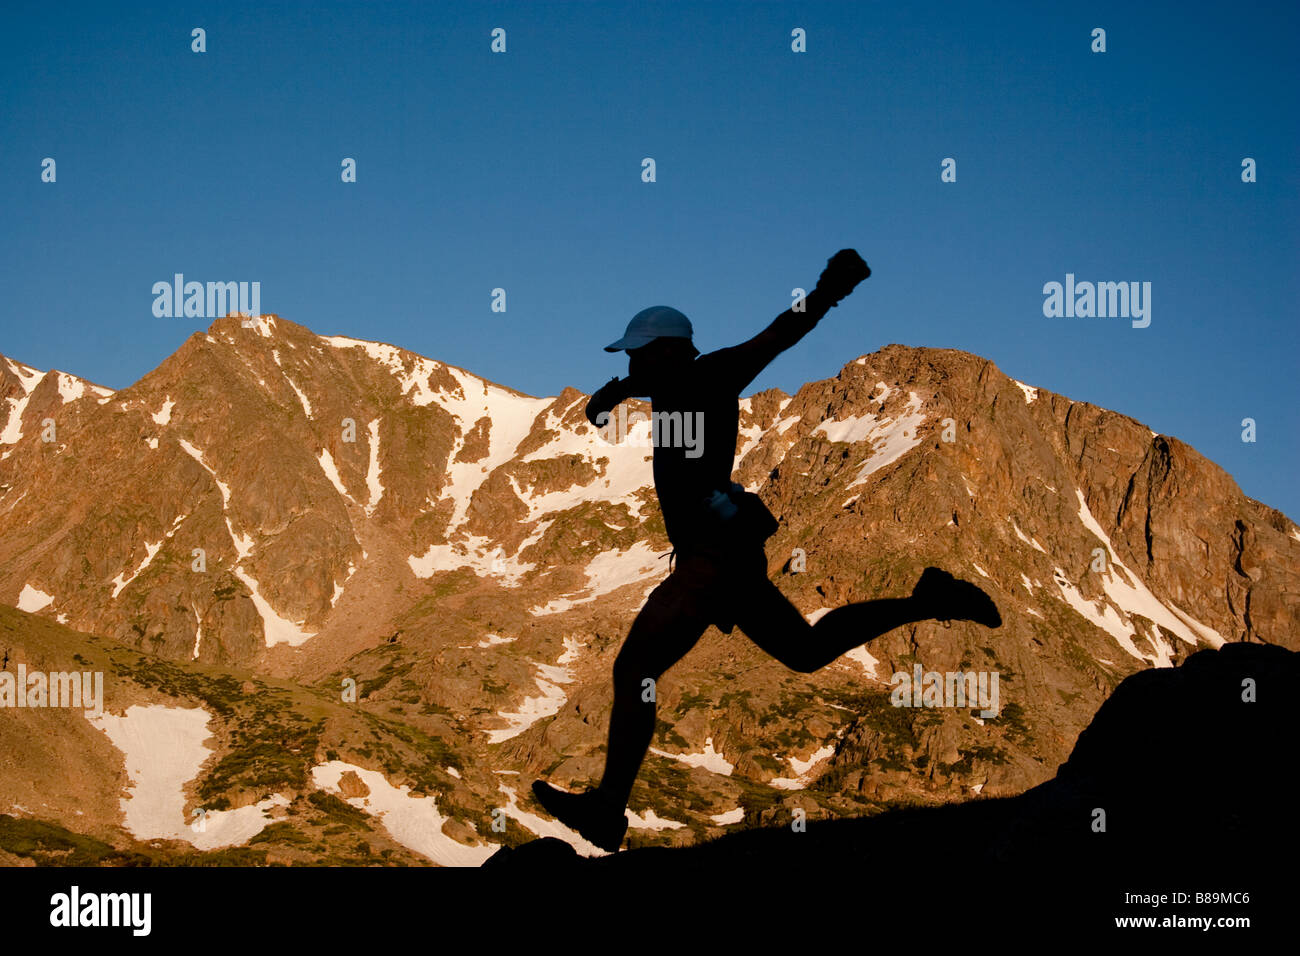 Ein Mann Trailrunning im Rocky Mountain National Park in der Route zu Lost und Husted See Stockbild